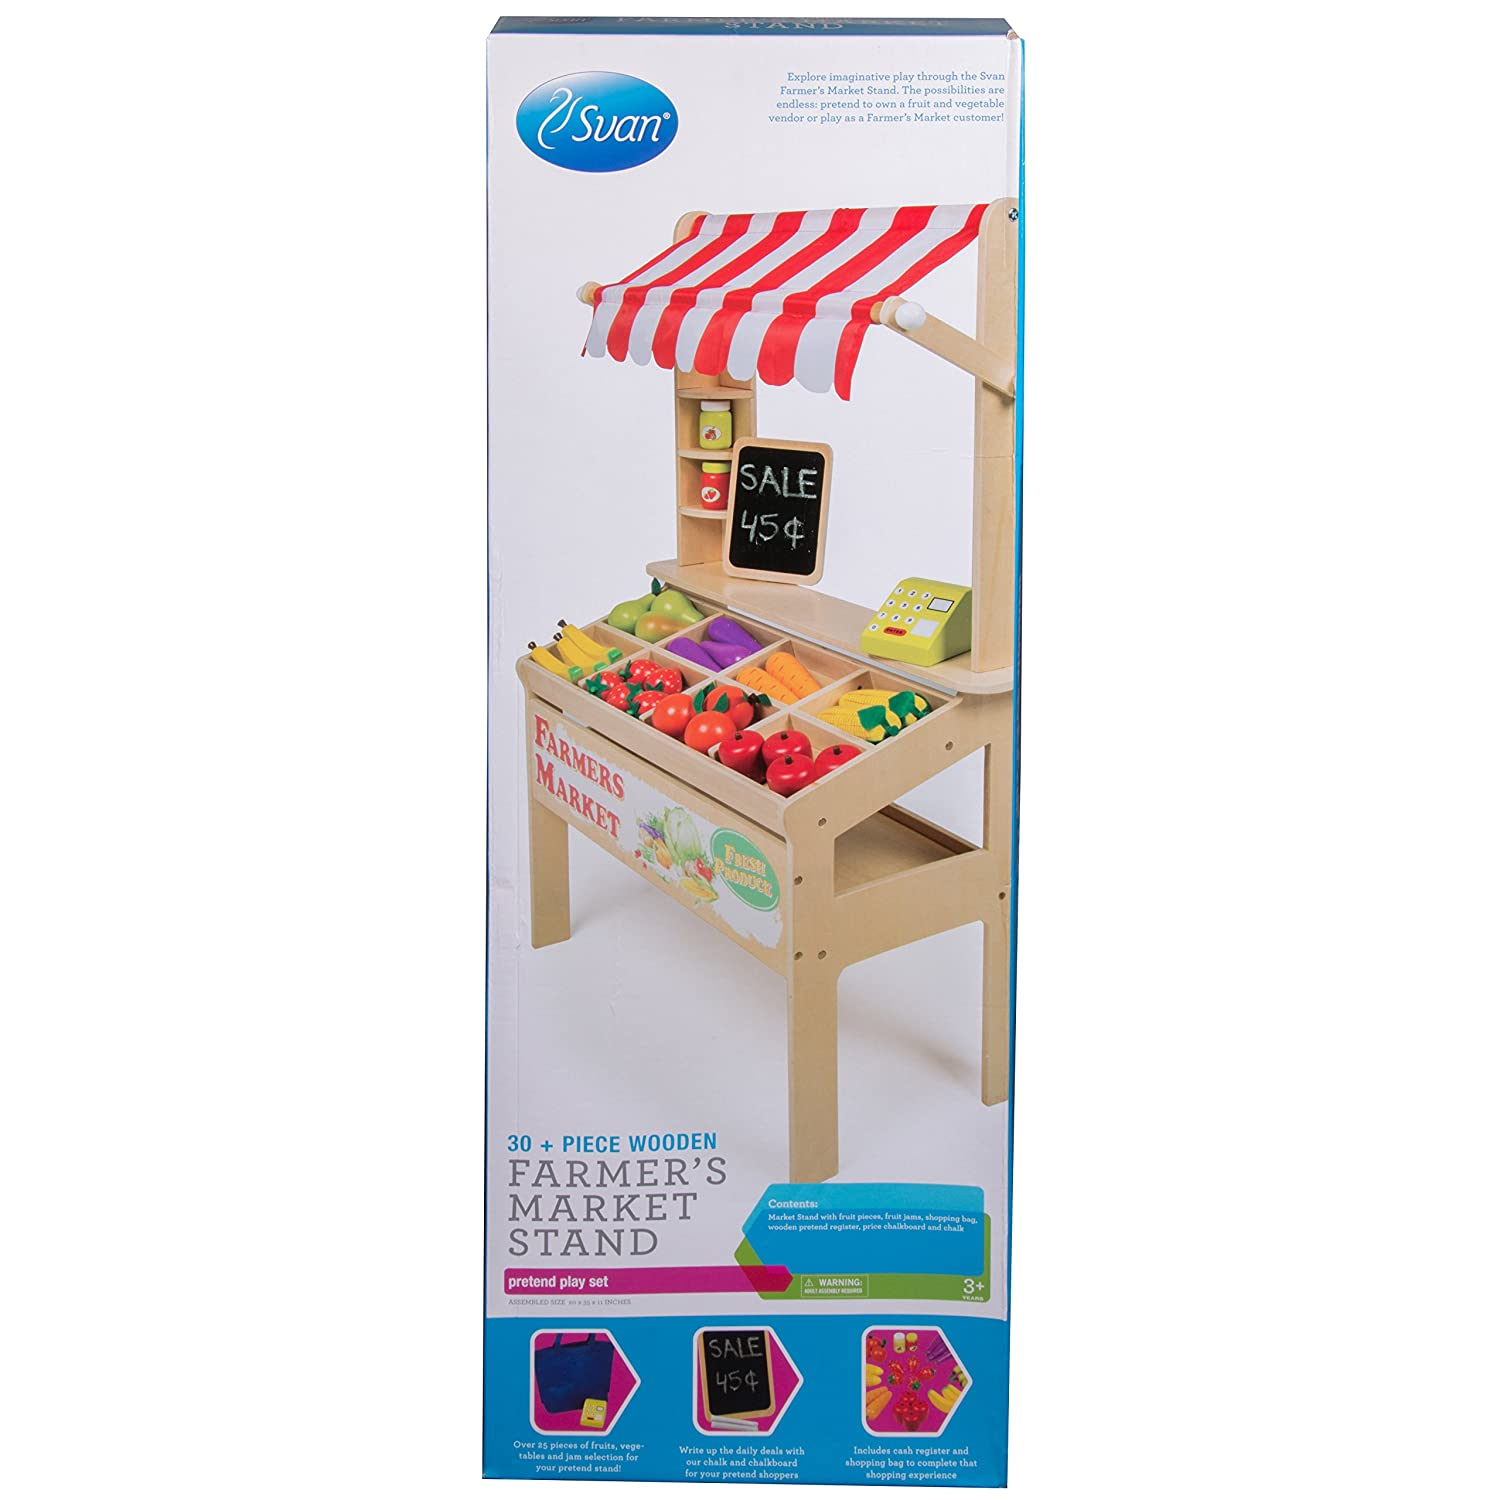 Wooden Farmers Market Stand   Kids Playroom Furniture Grocery Stand For  Pretend Play (30+ Pieces)   Includes ...